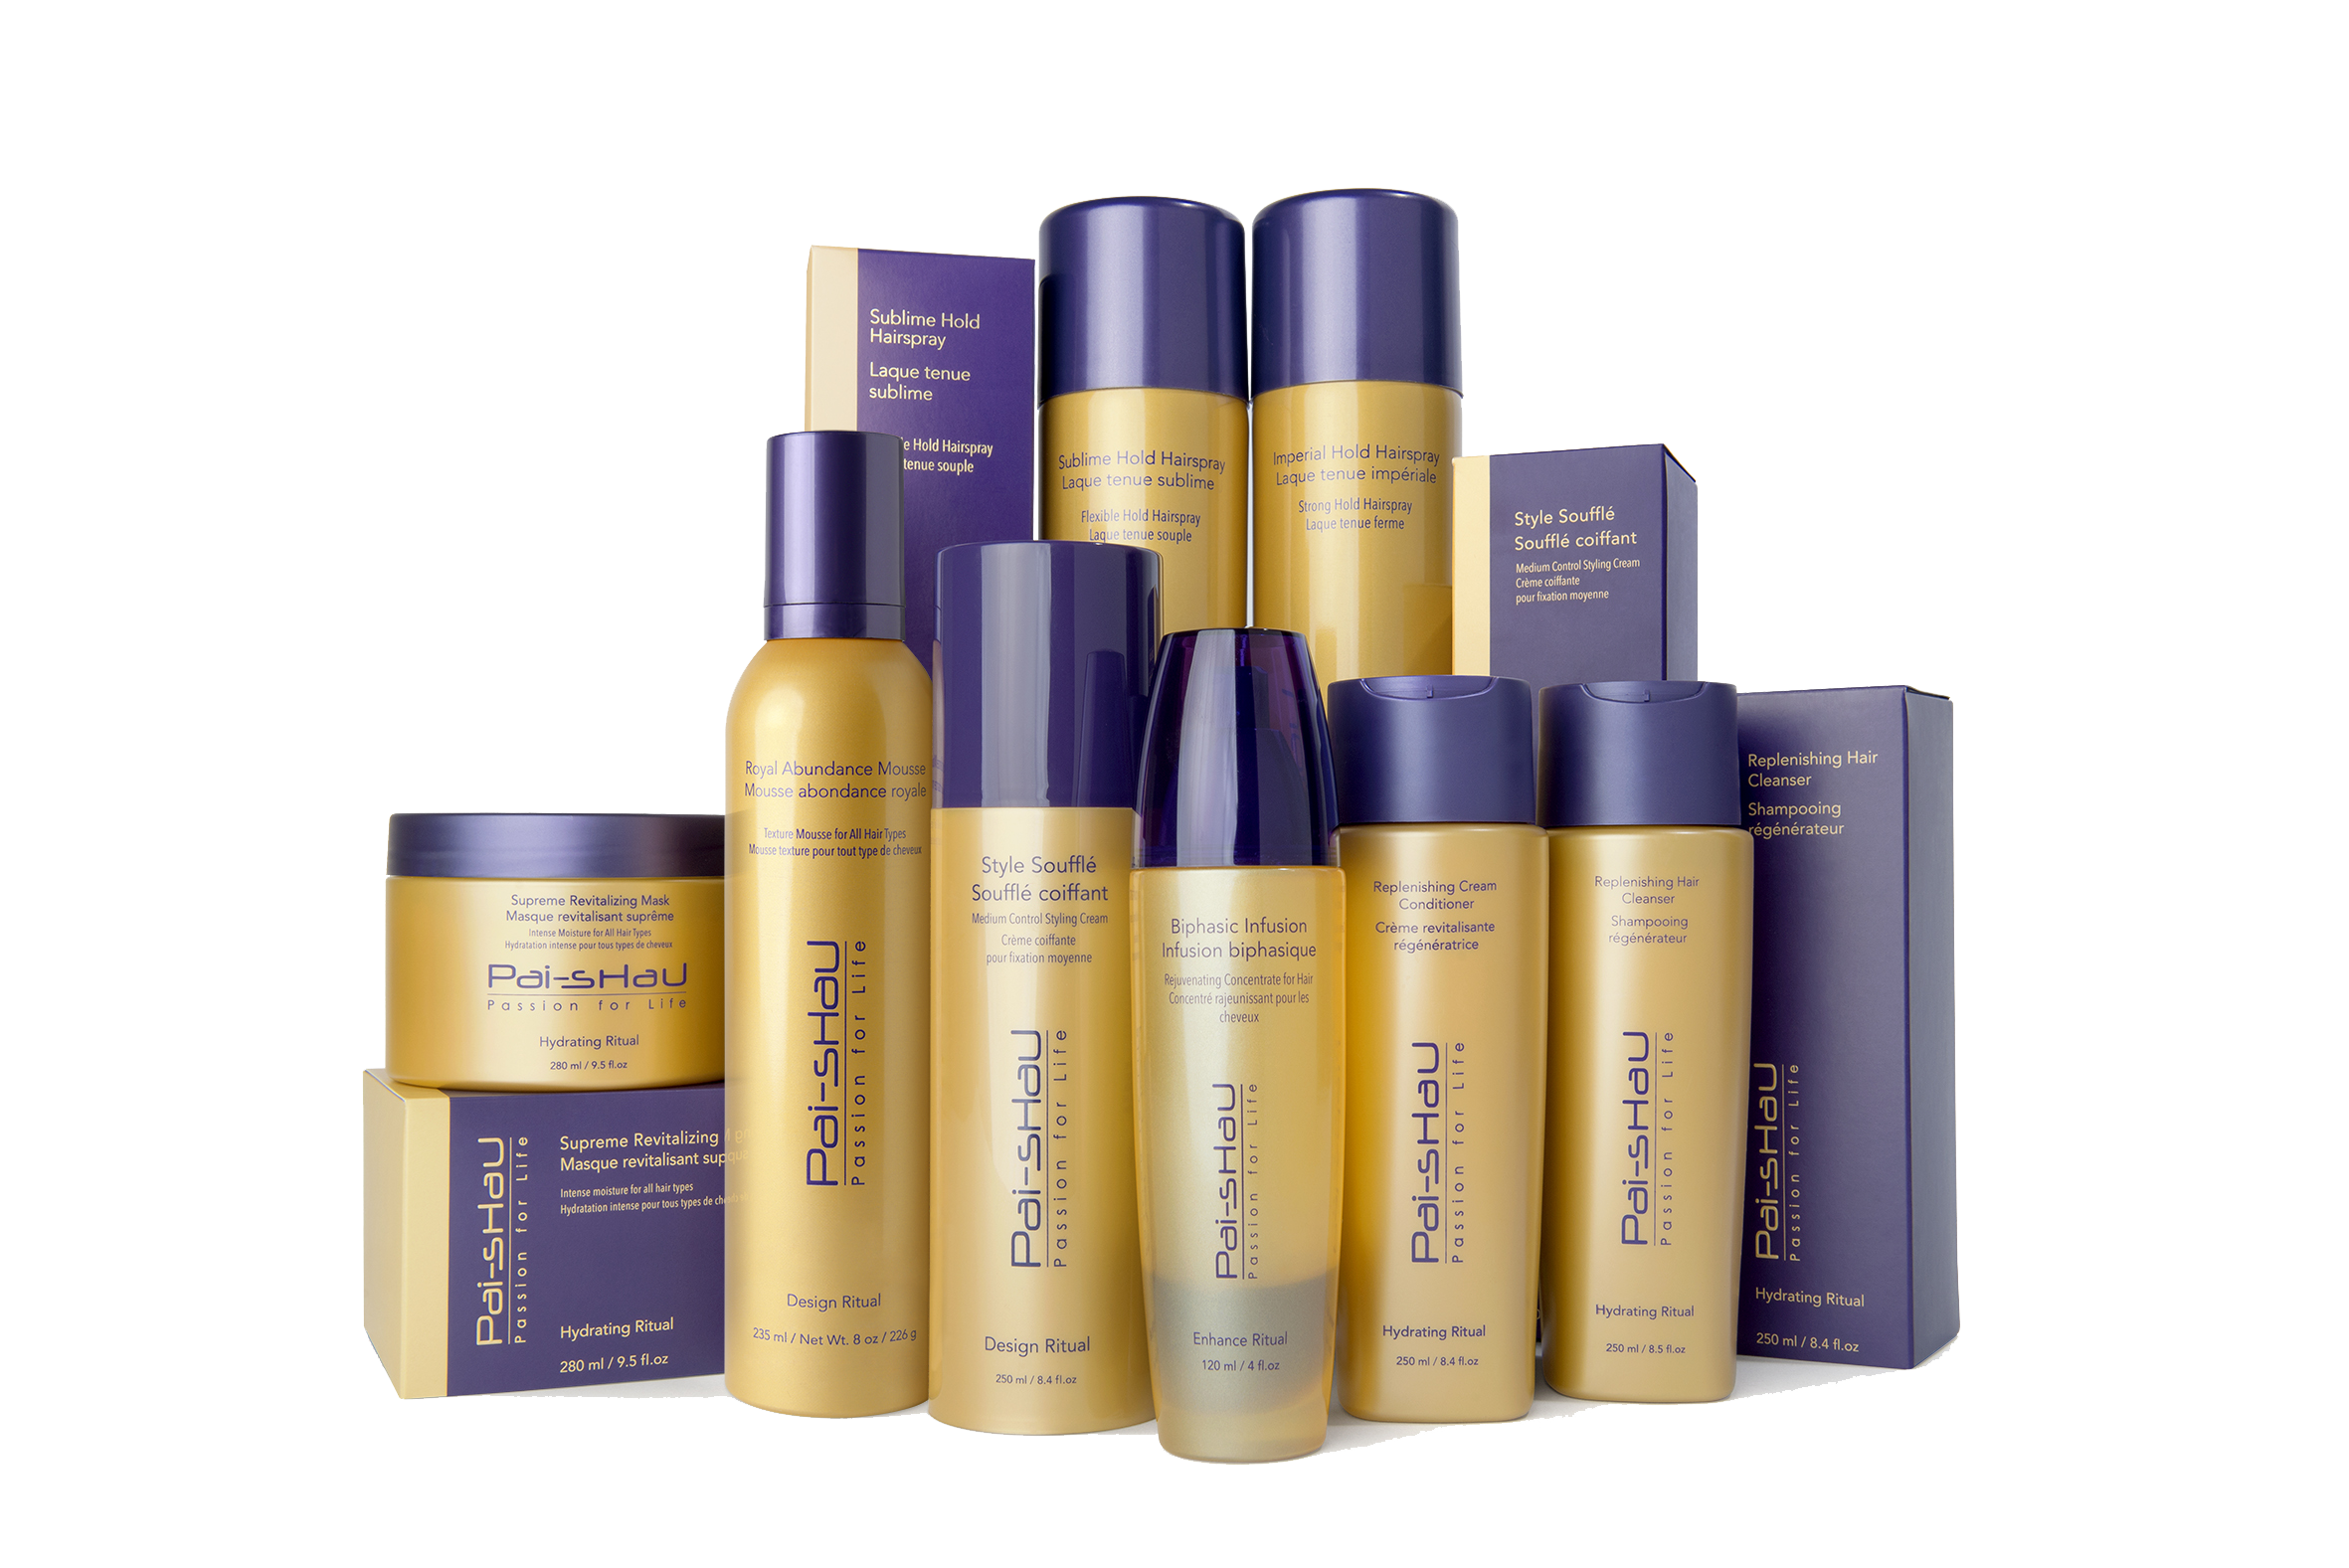 Pai-Shau-Full-Group-Shot